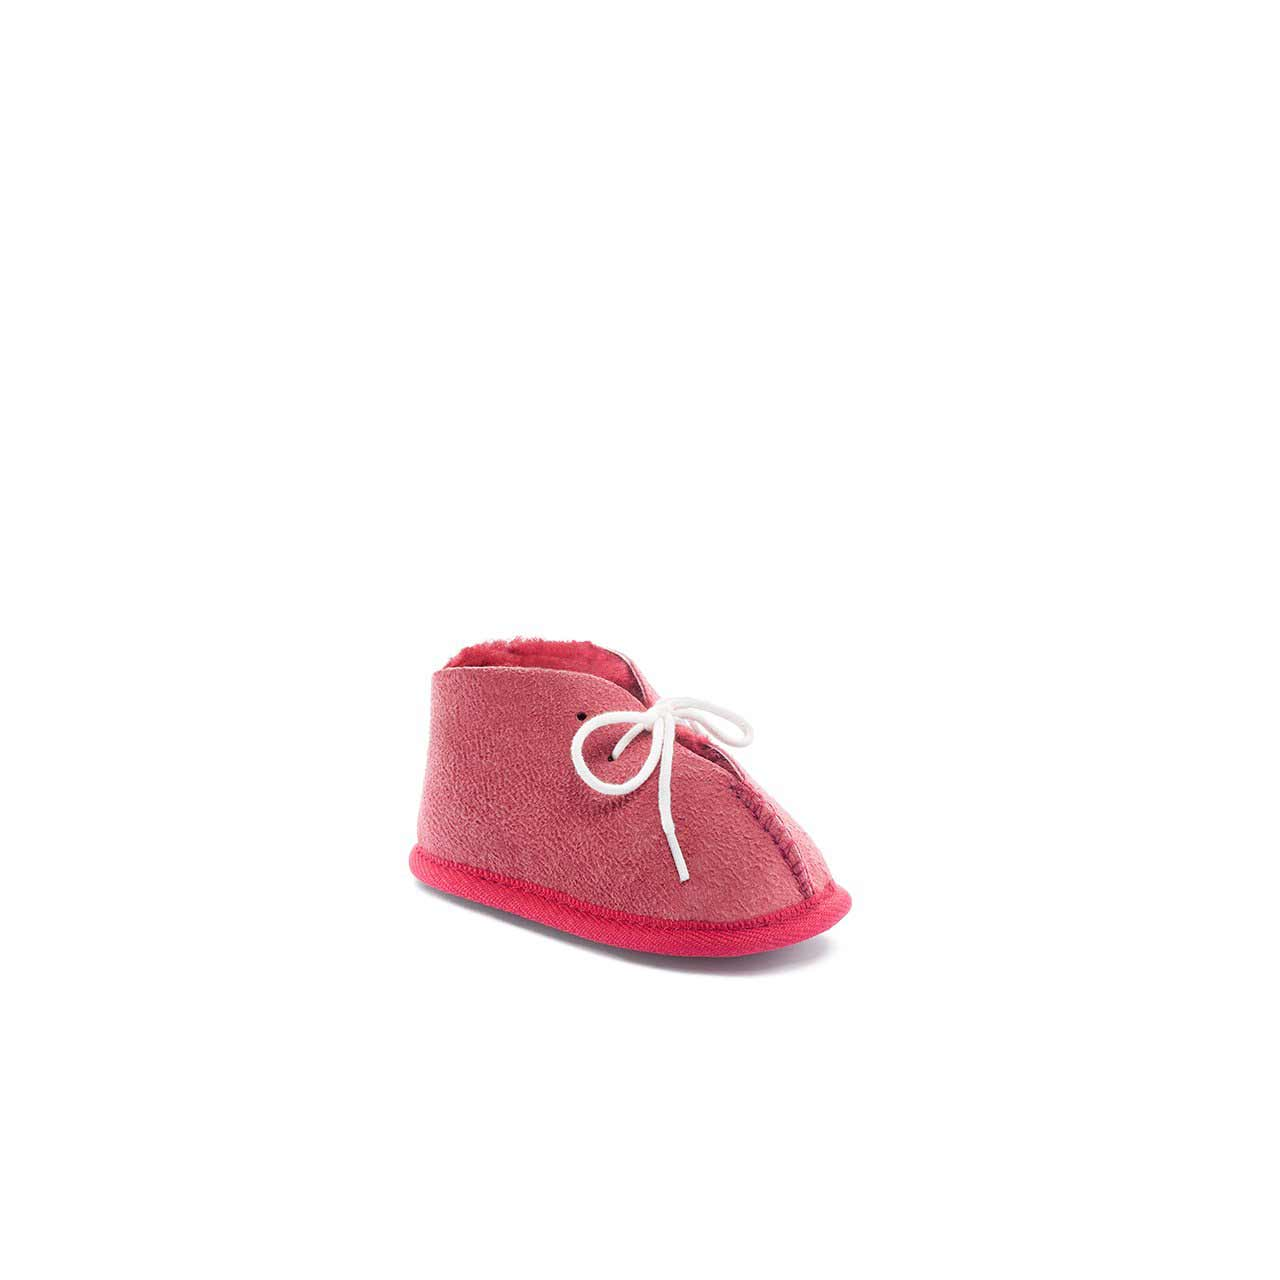 Sheepskin Baby Booties | The One and Only | Ugg Australia®